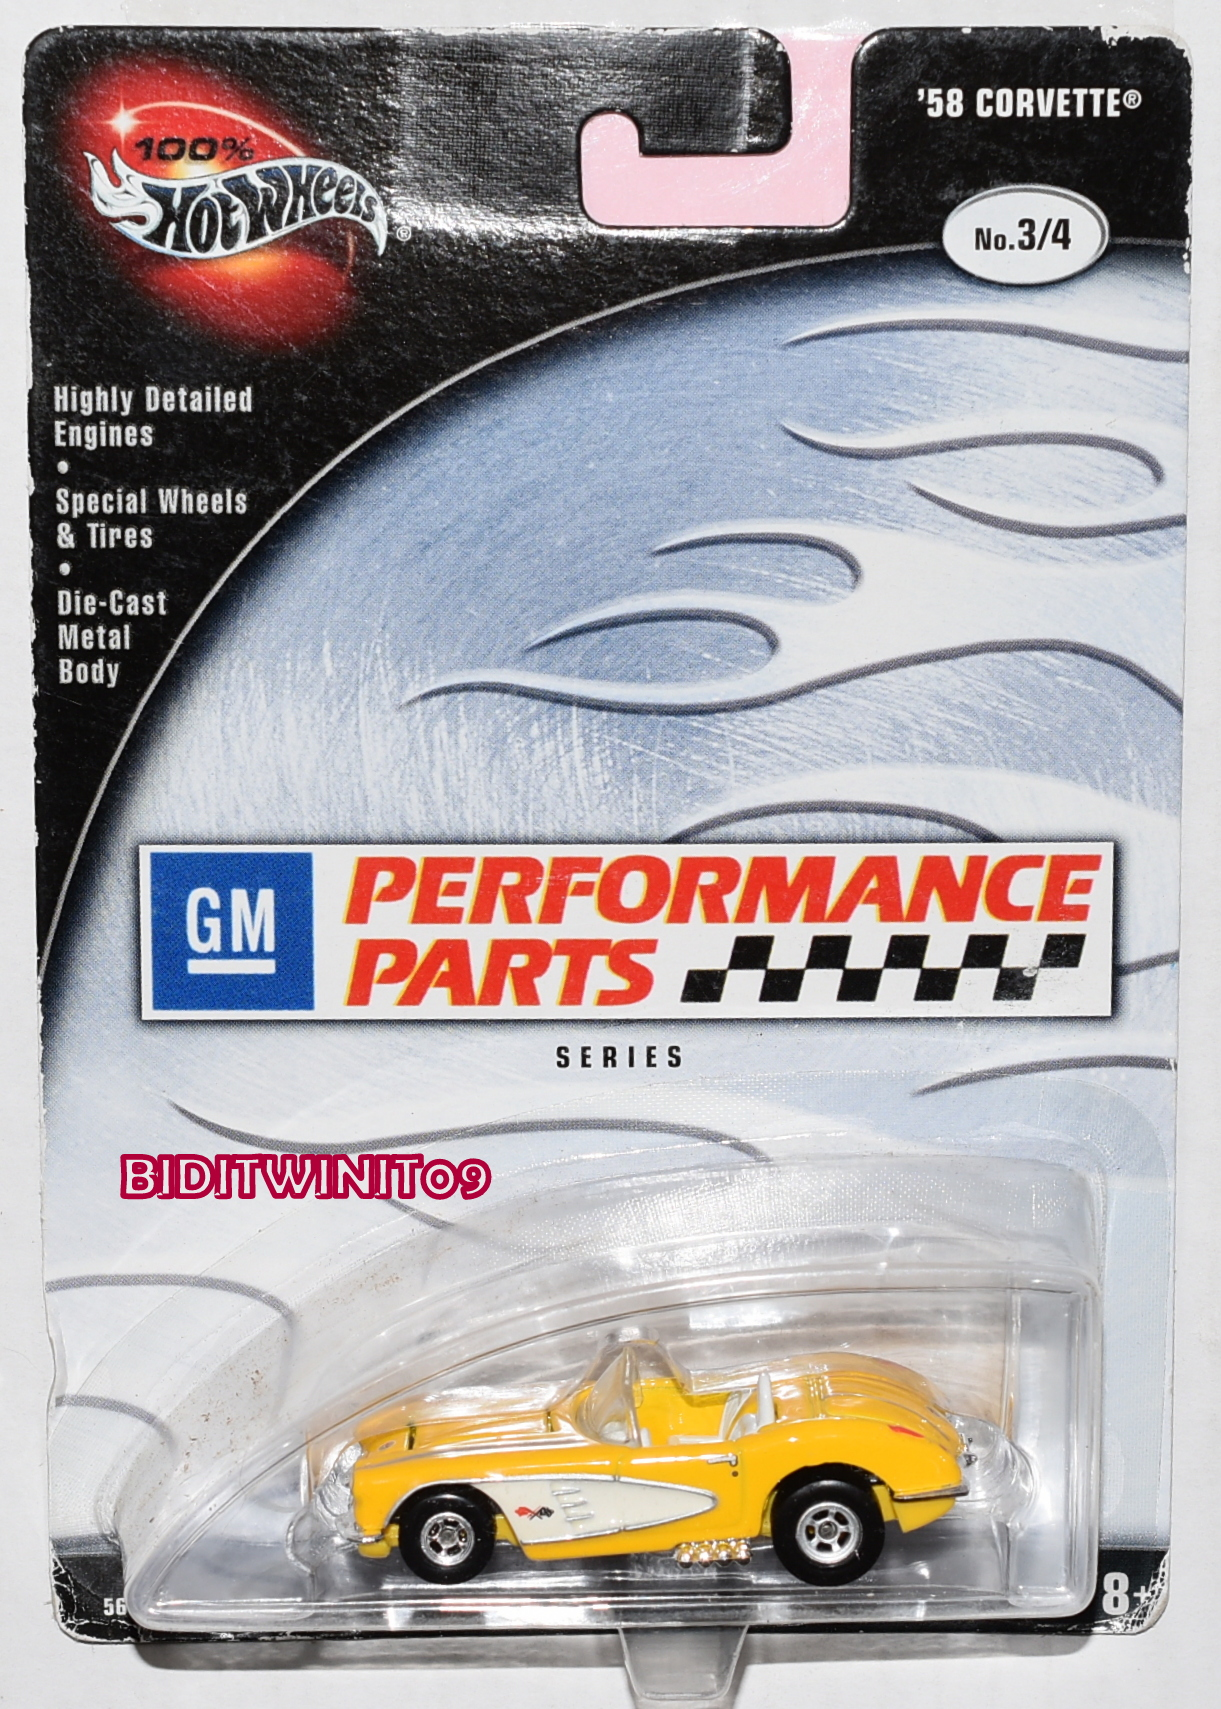 100% HOT WHEELS PERFORMANCE PARTS SERIES '58 CORVETTE #3/4 YELLOW